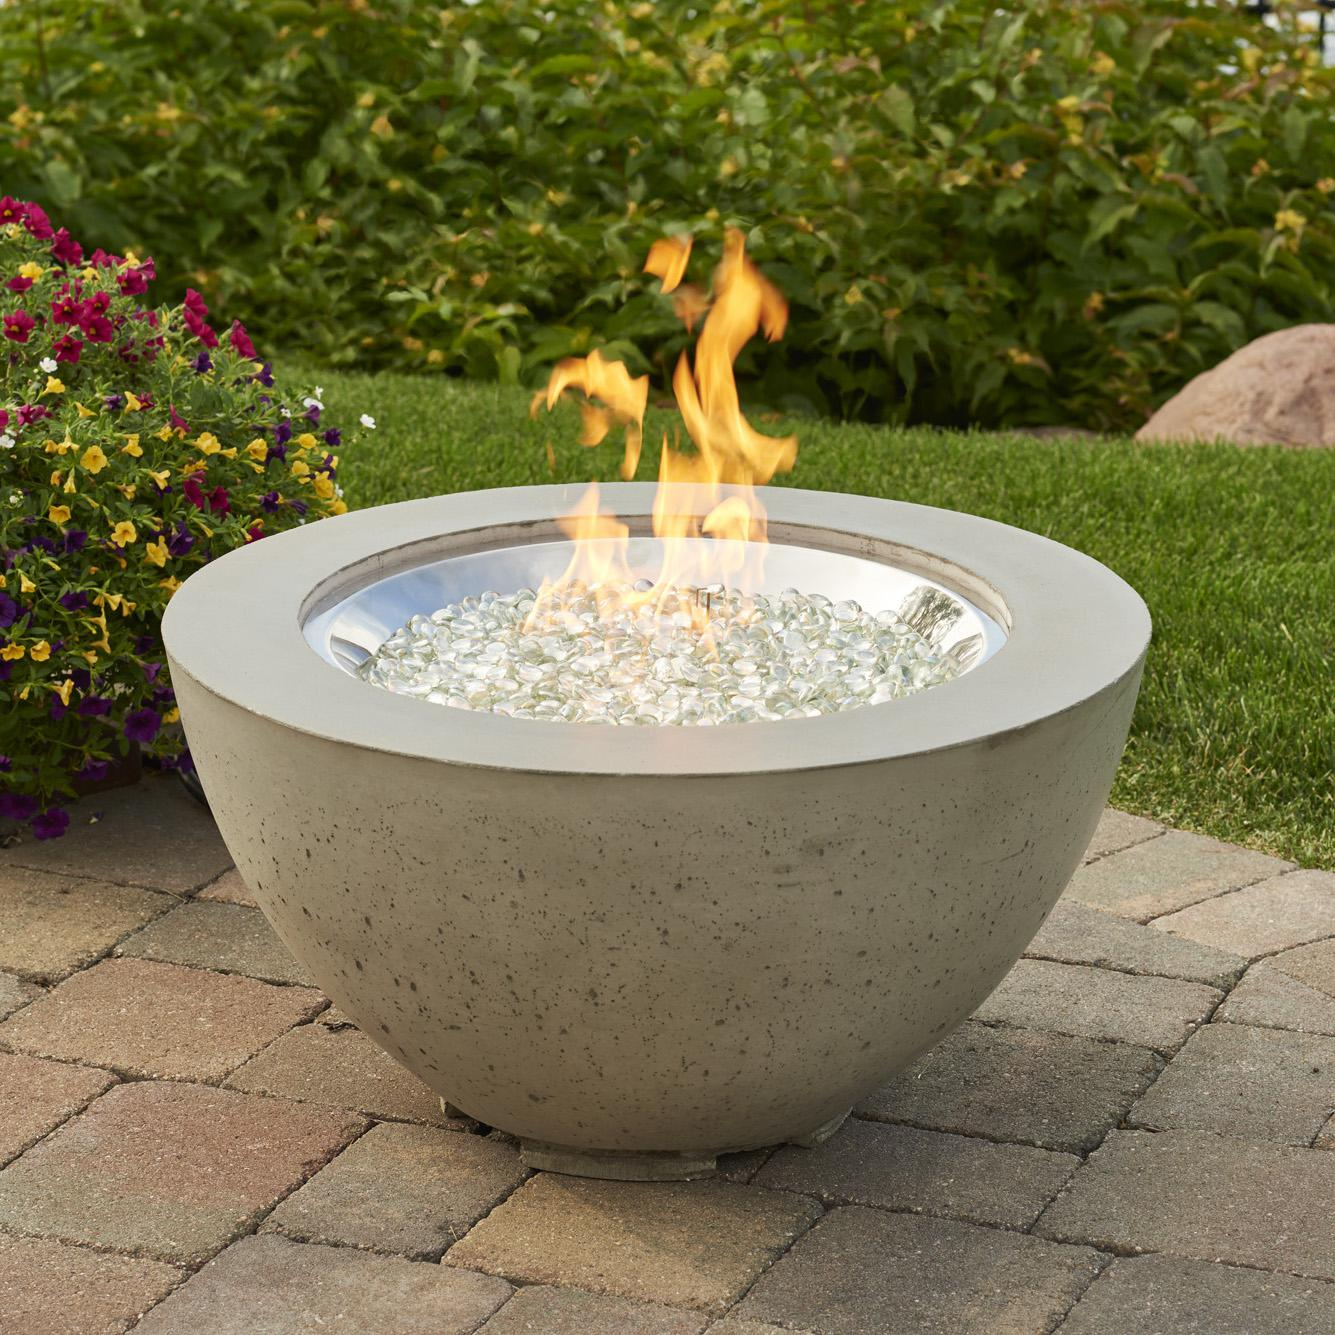 Outdoor GreatRoom Cove 29-Inch Round Natural Gas Fire Pit...